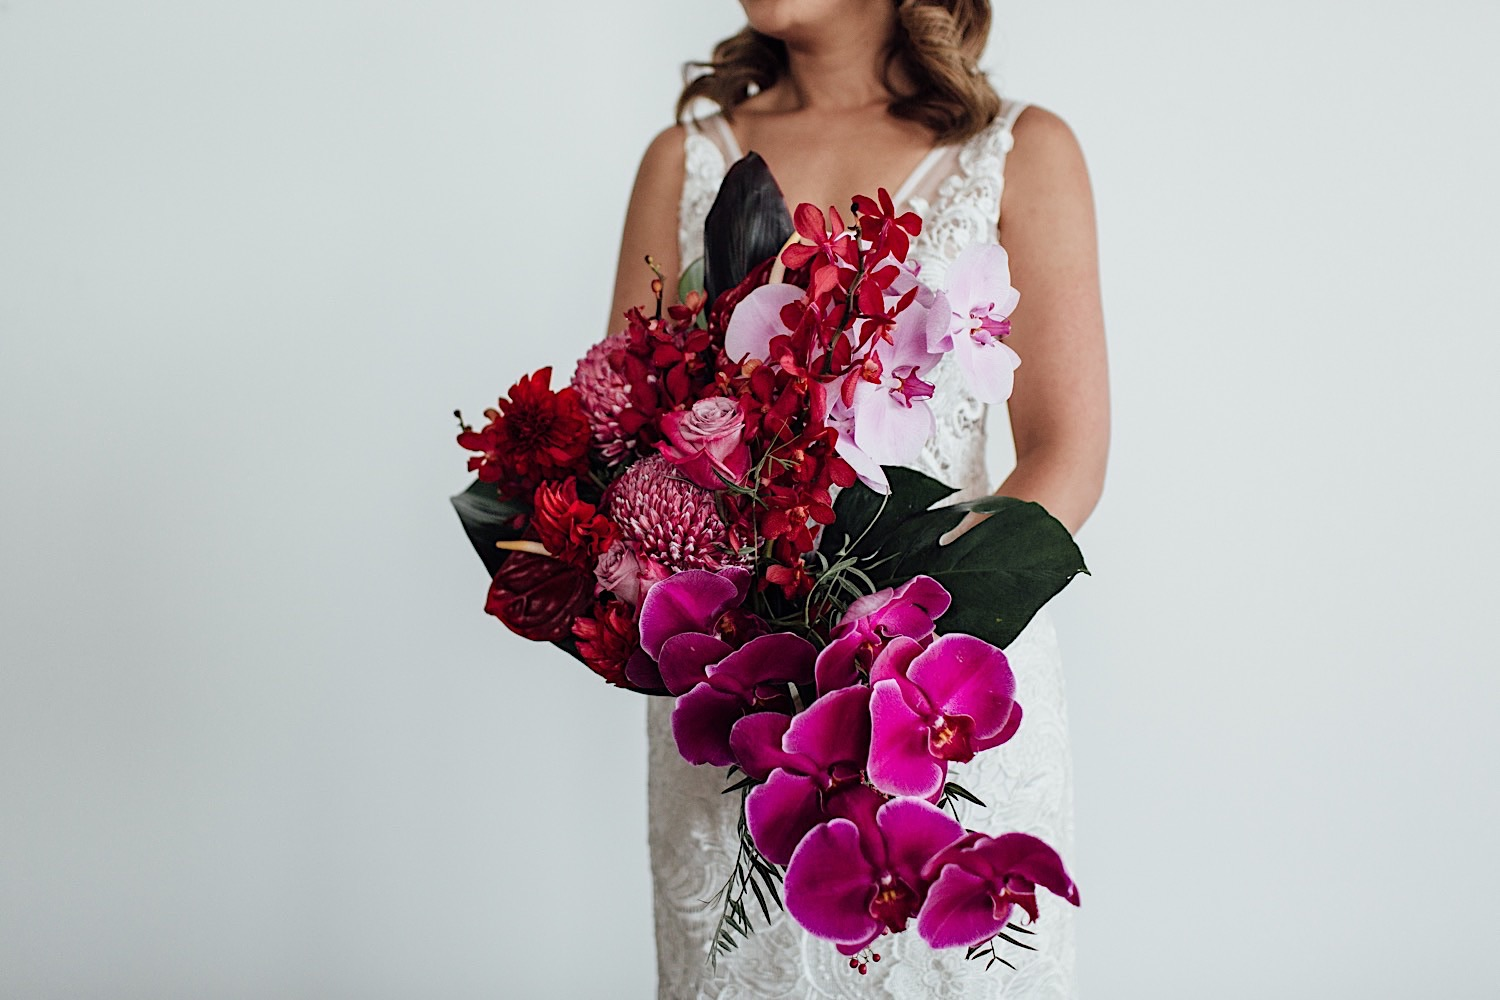 Sydney bride holding colourful bouquet of pink orchids and roses